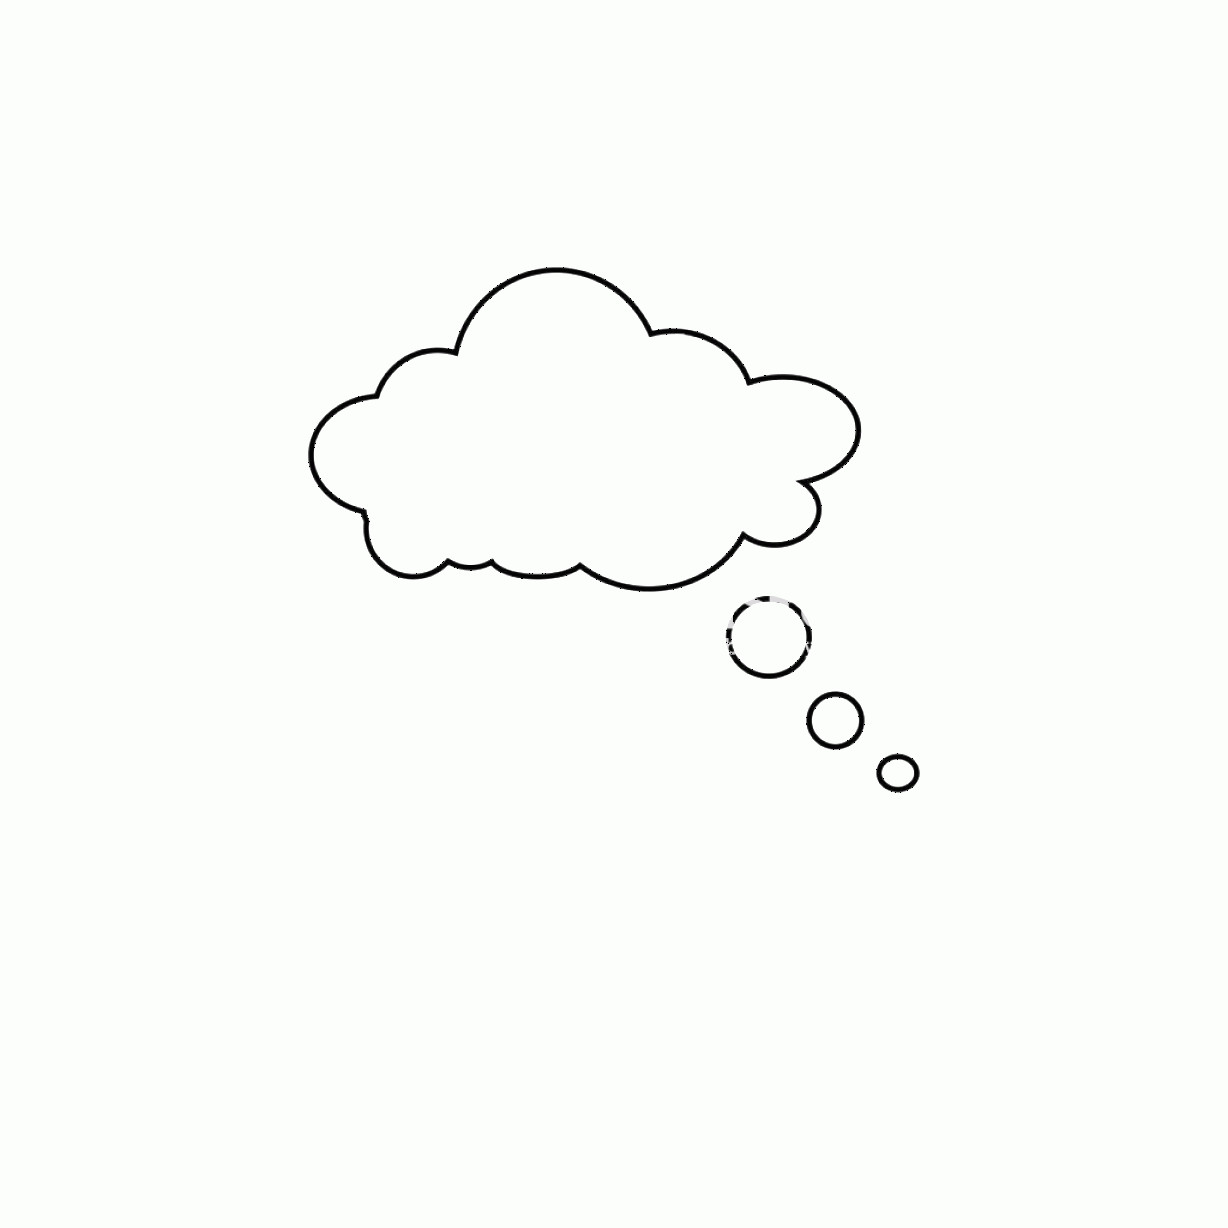 Thought Bubble Vector Sketch: Speech Bubble Icon Thinking Speach Bubble Vector Thought Cloud Gm